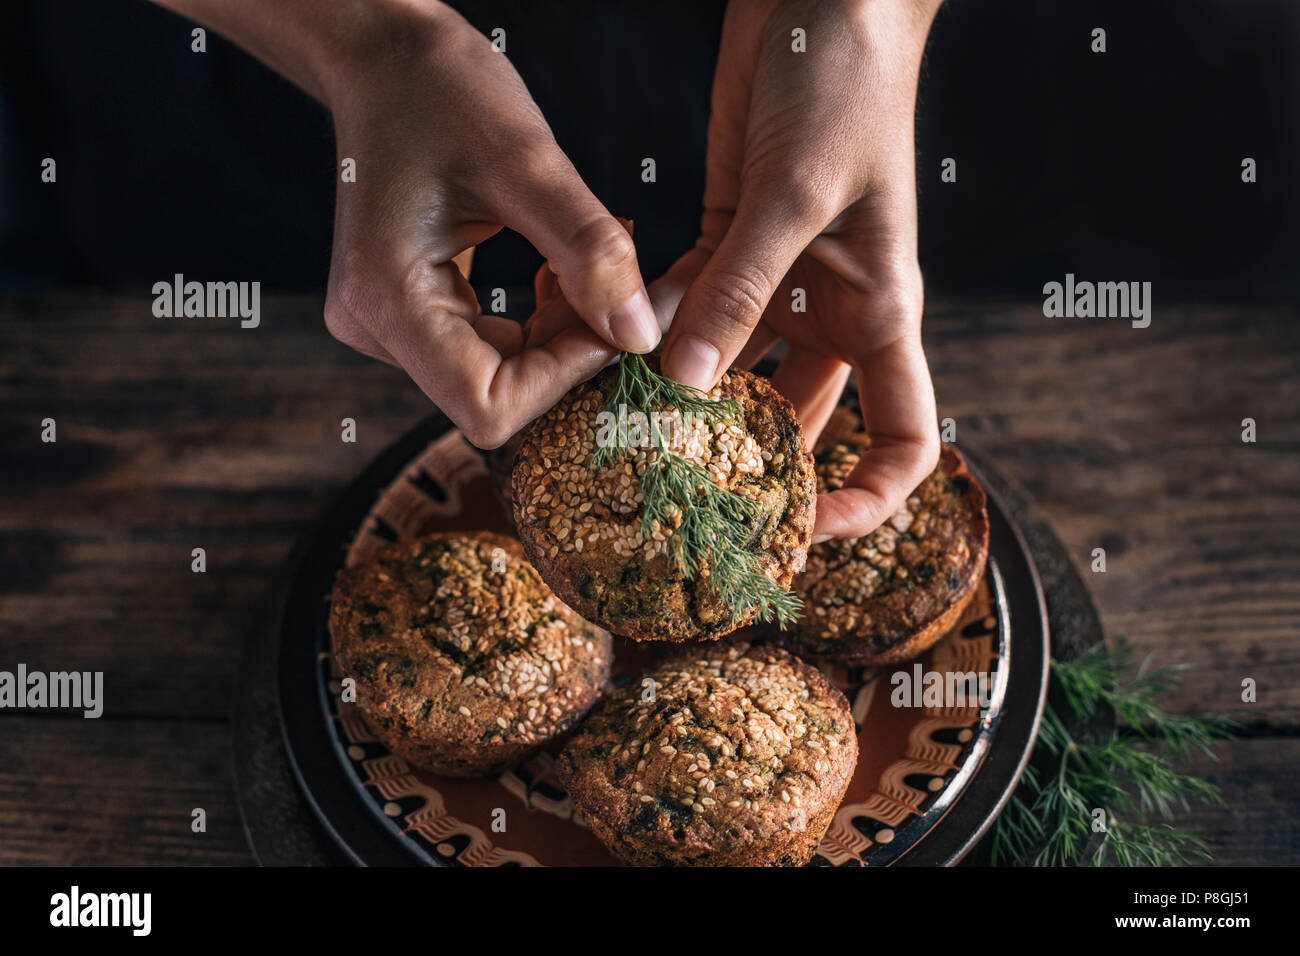 Persons Hands wth Corn muffins bread with leaf of chard - Stock Image